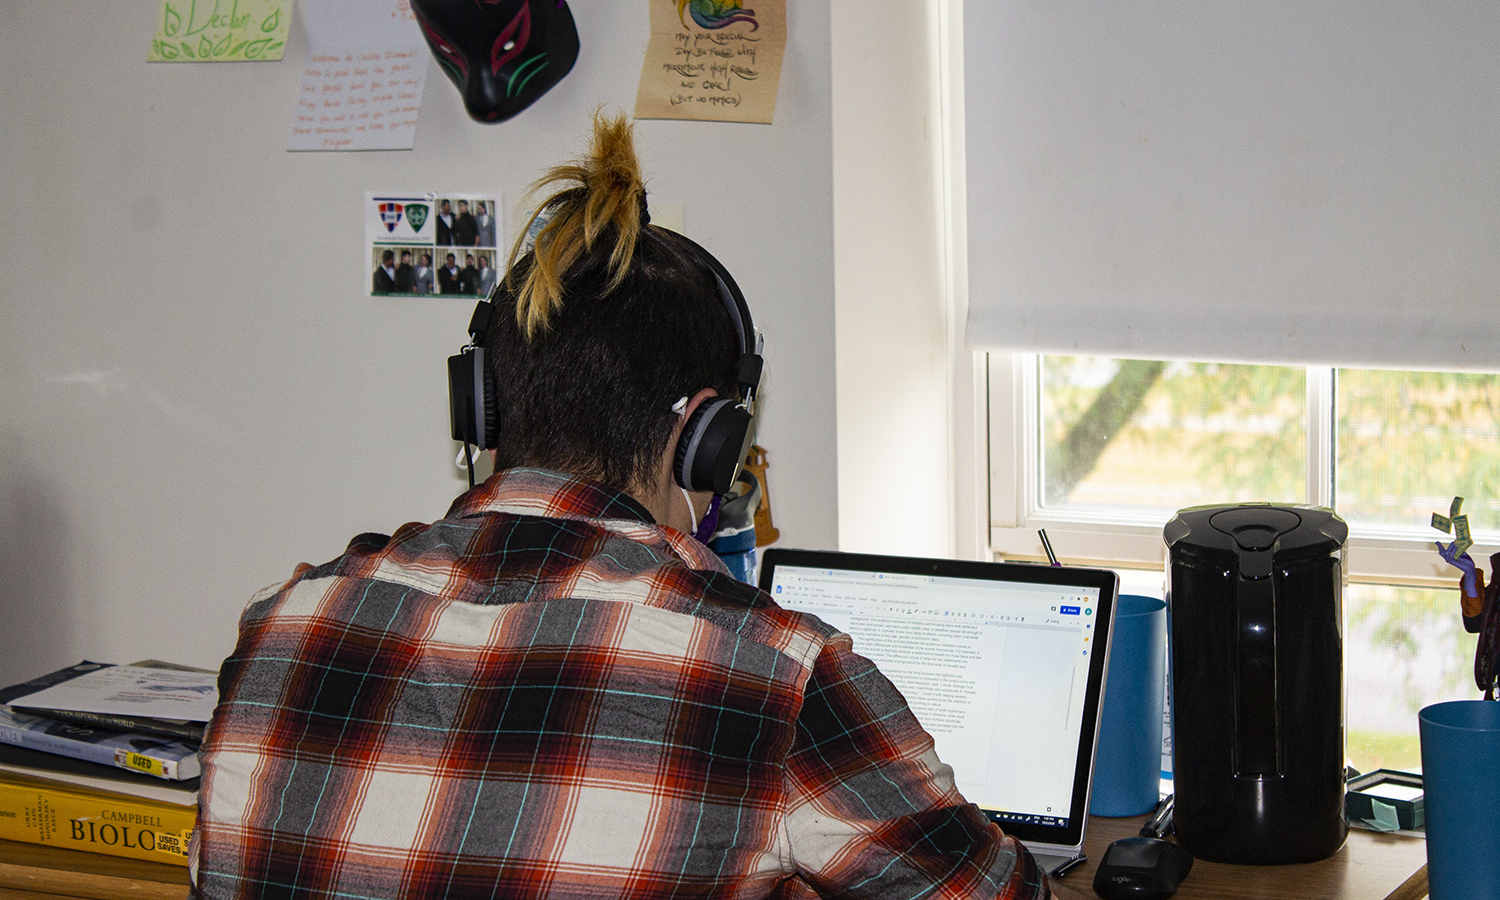 Declan Fox '23 listens to music while finishing up an assignment in his dorm room.